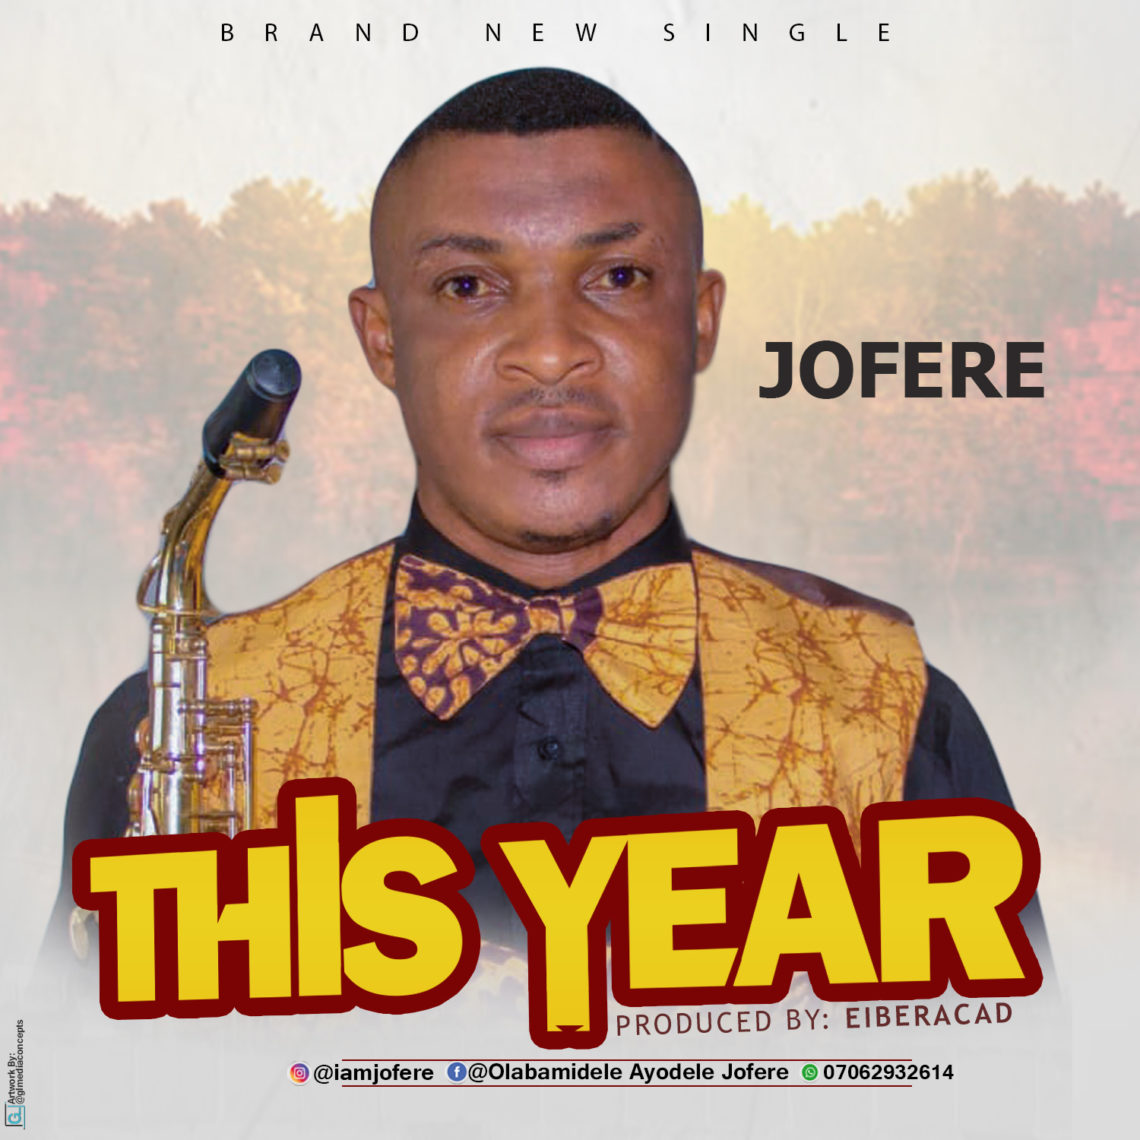 This Year by Jofere